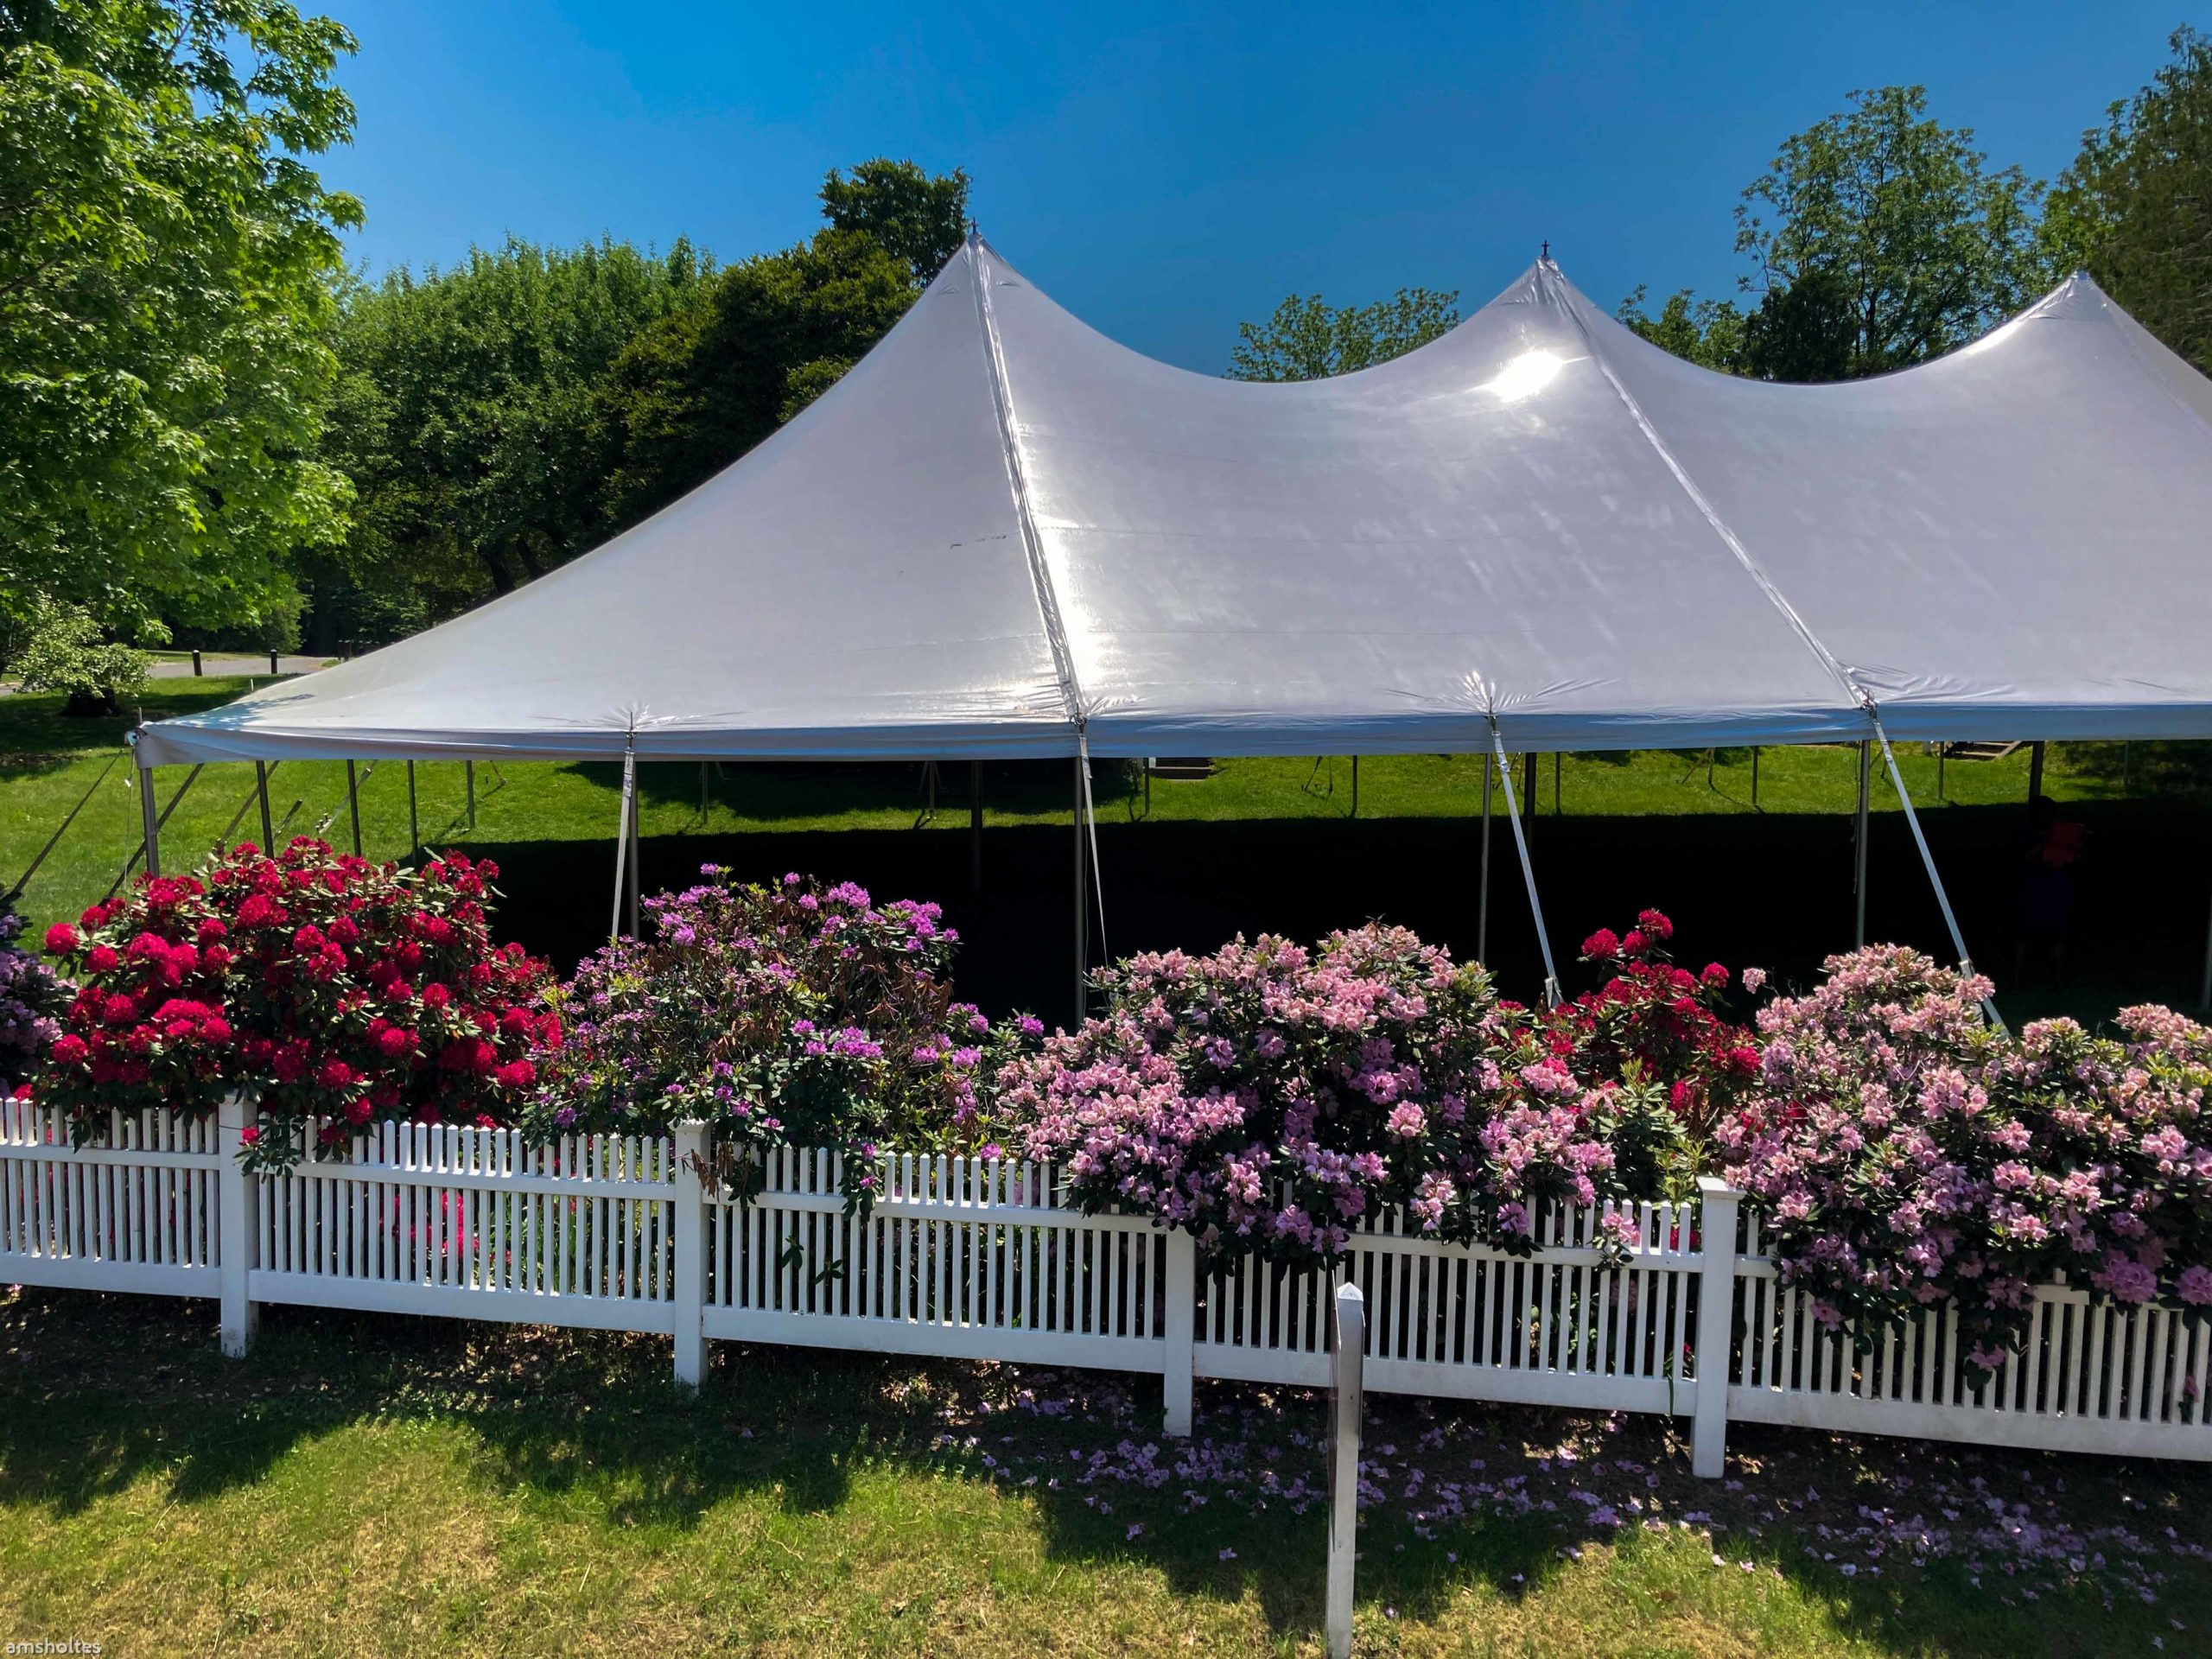 wedding tent surrounded by rhododendrons